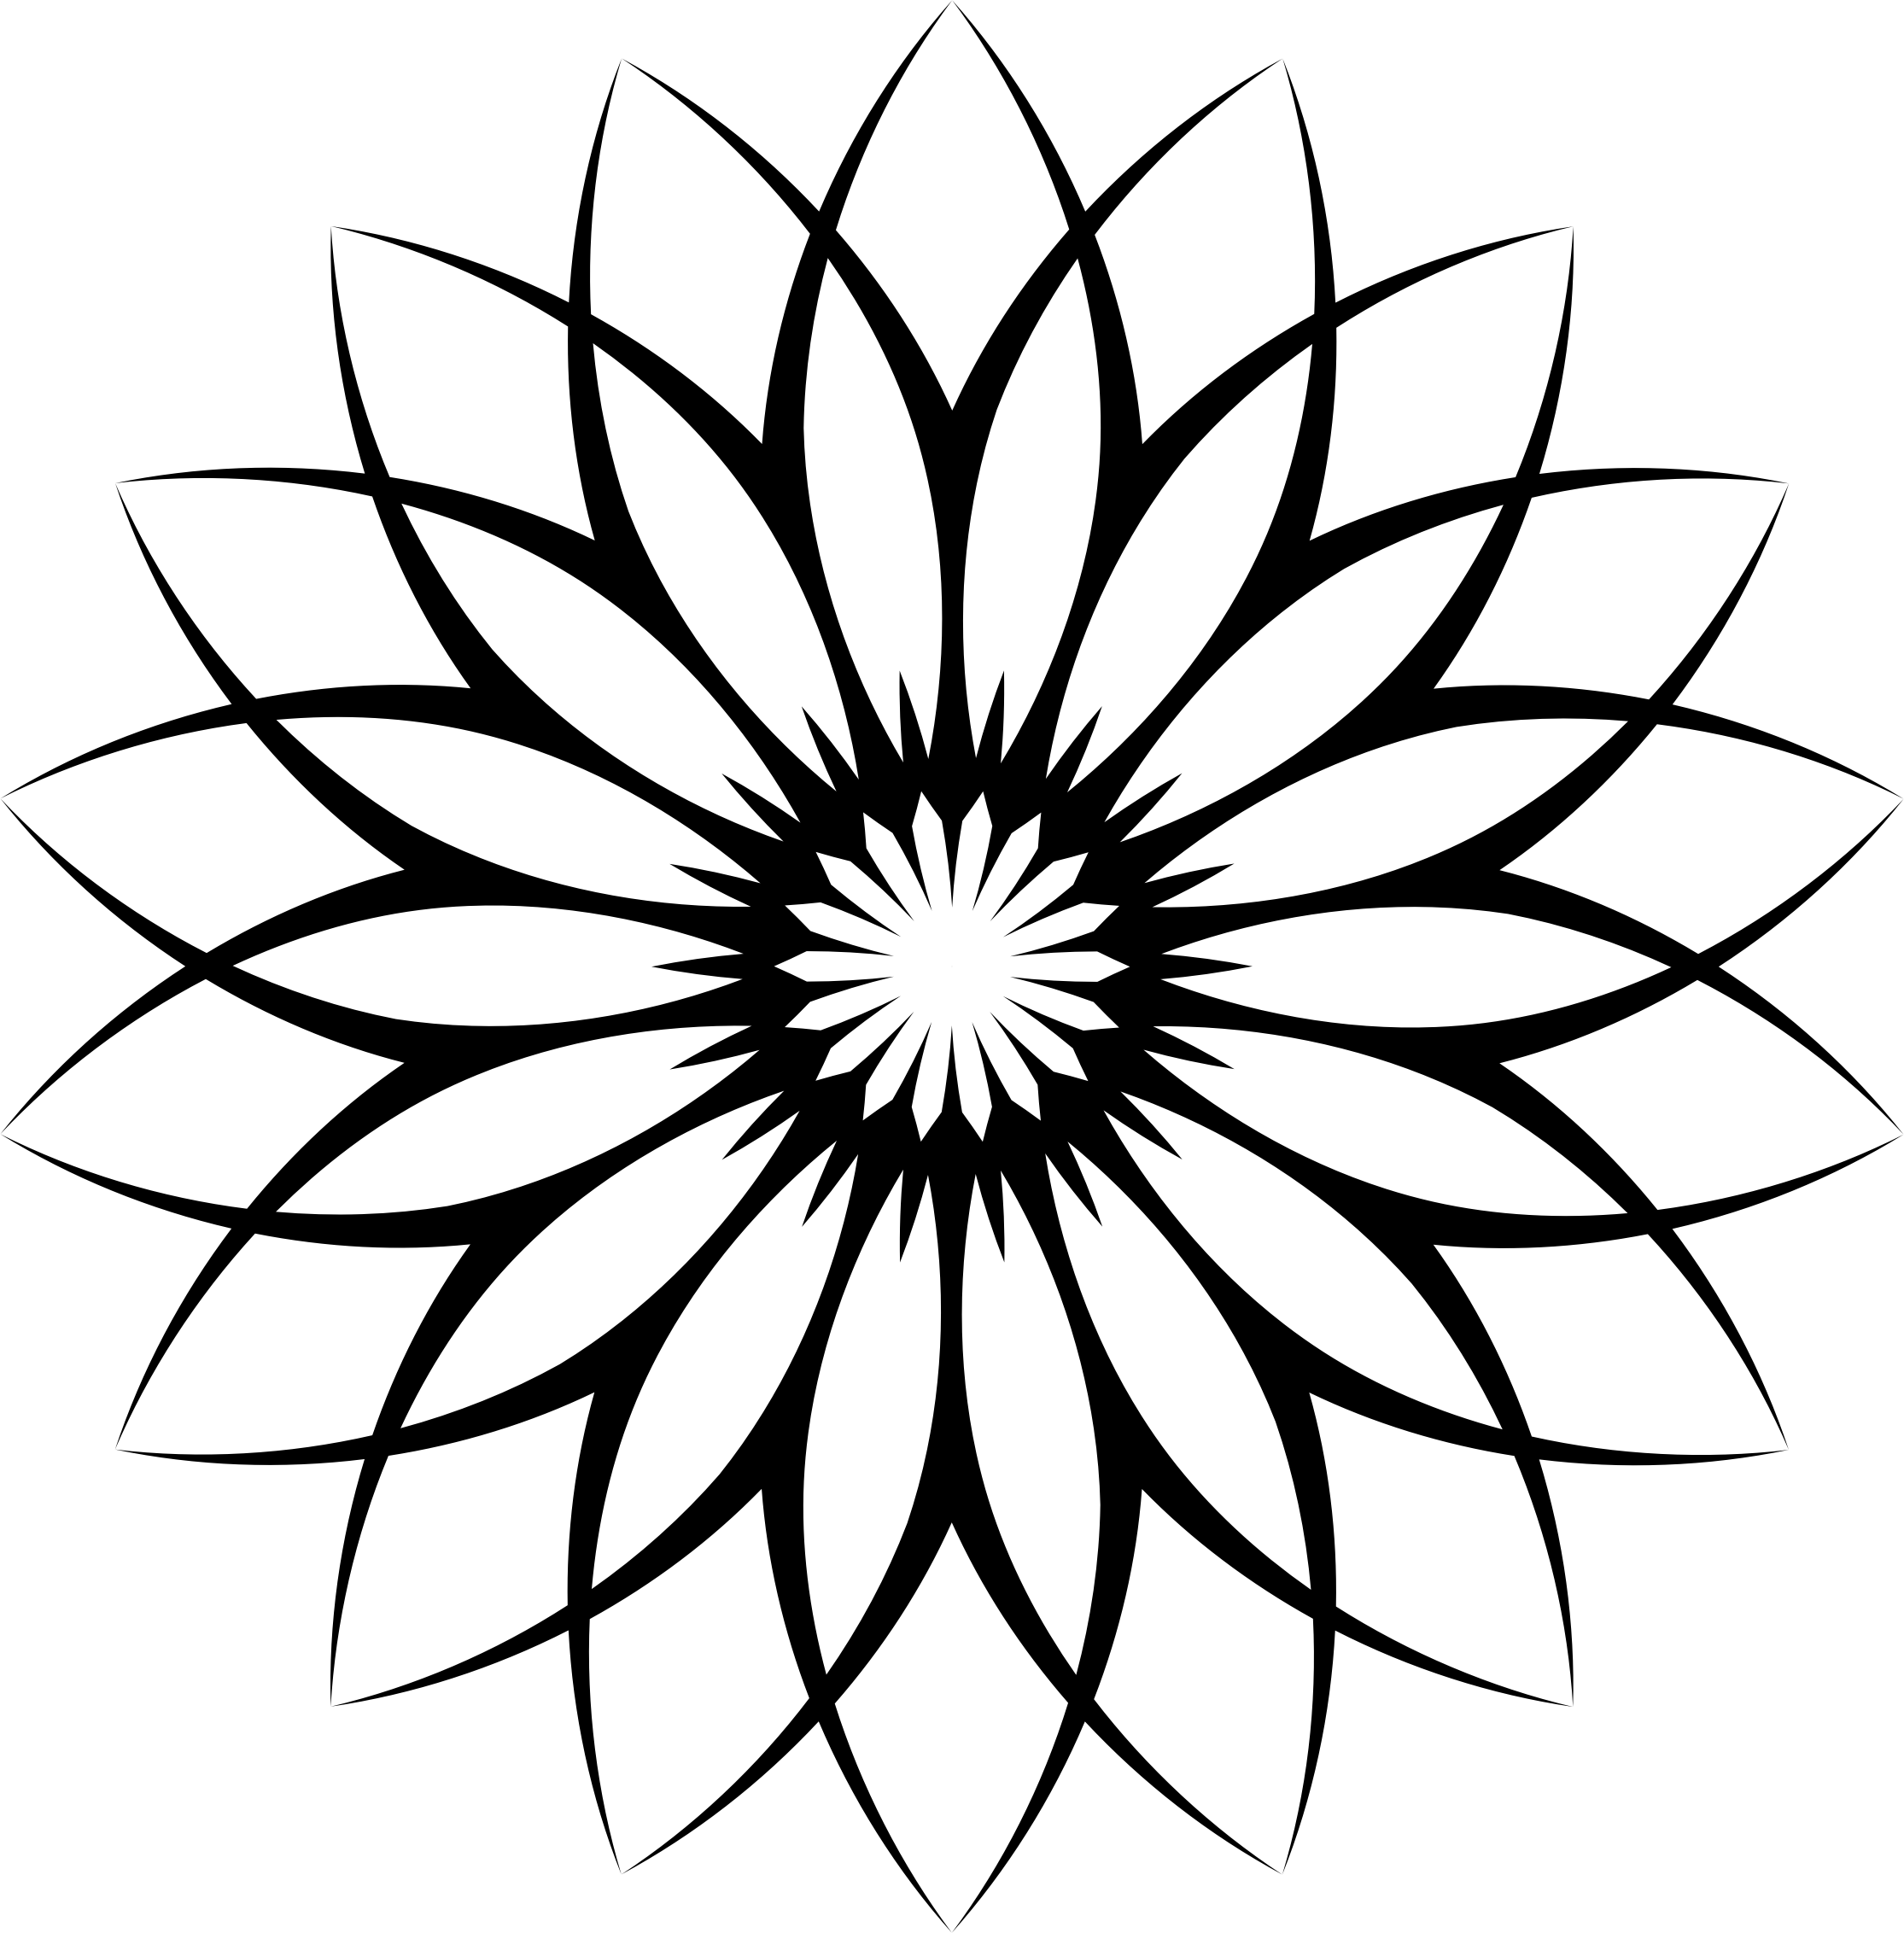 2230x2264 Flower Line Clipart Black And White